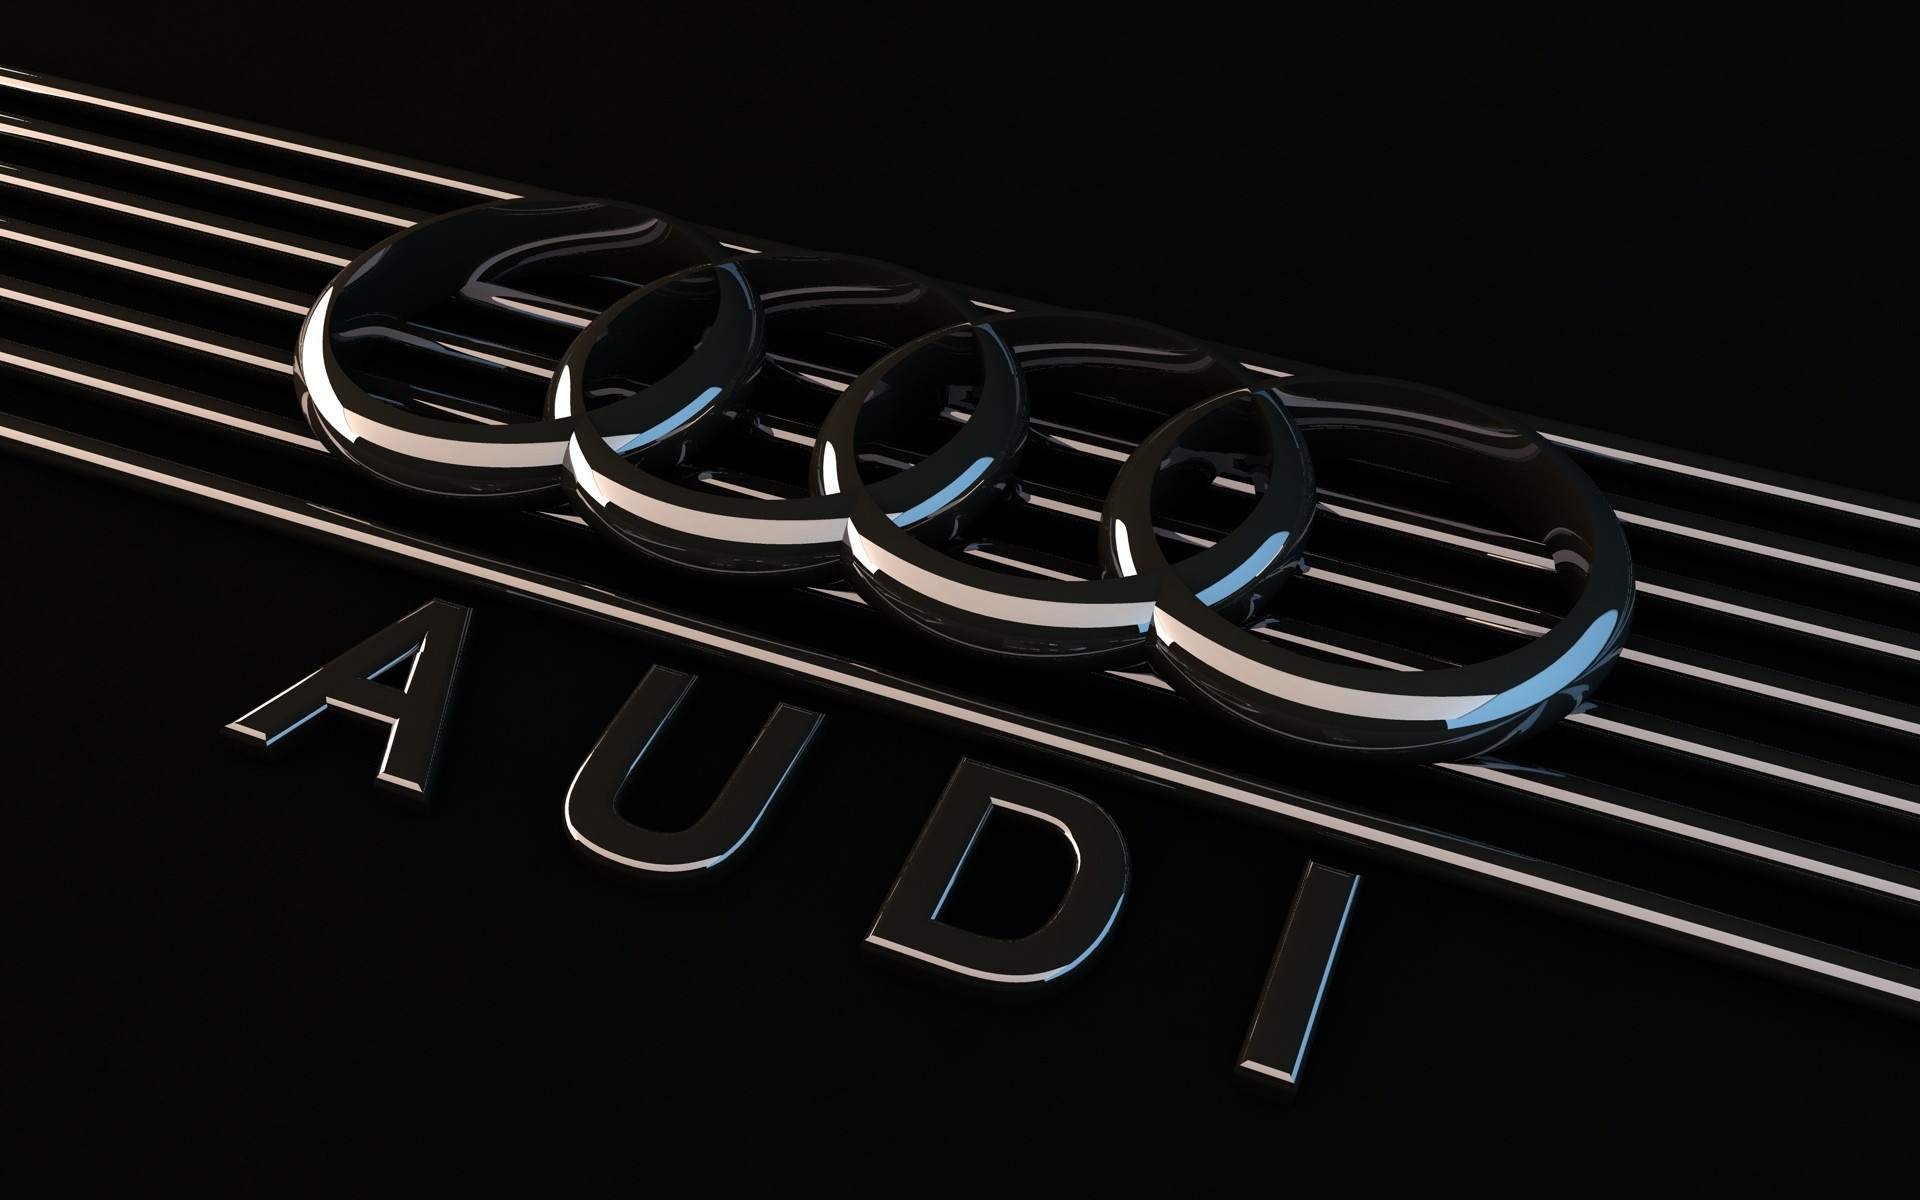 Audi Logo Wallpaper HD   PixelsTalk Net Download audi logo wallpaper HD